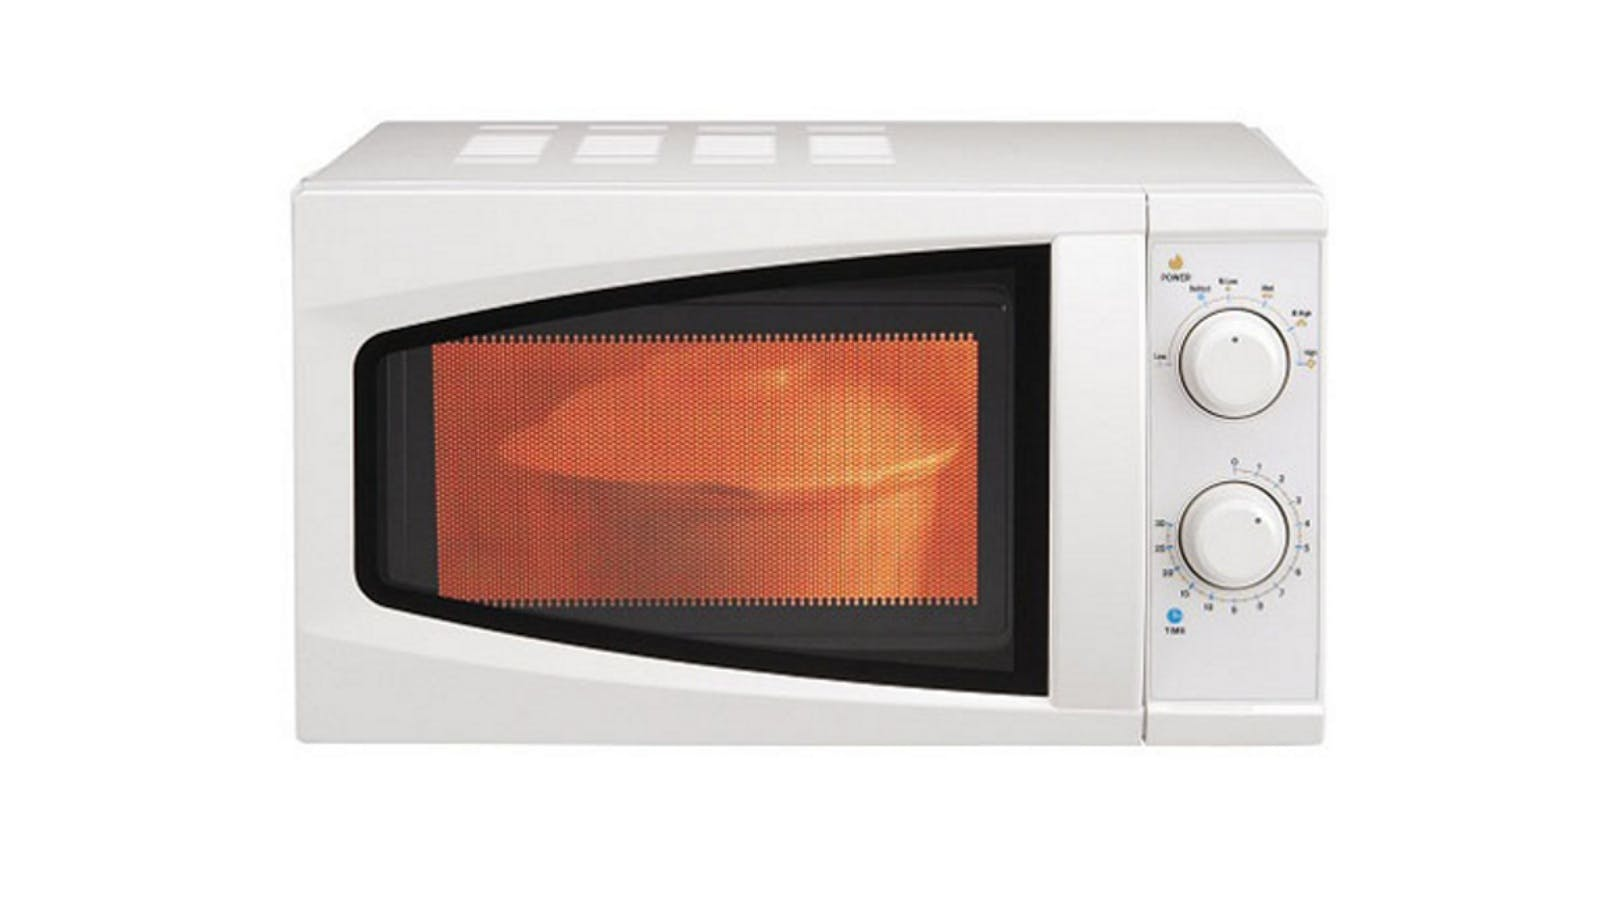 stand combo oven built combination samsung review microwave toaster canada walmart in